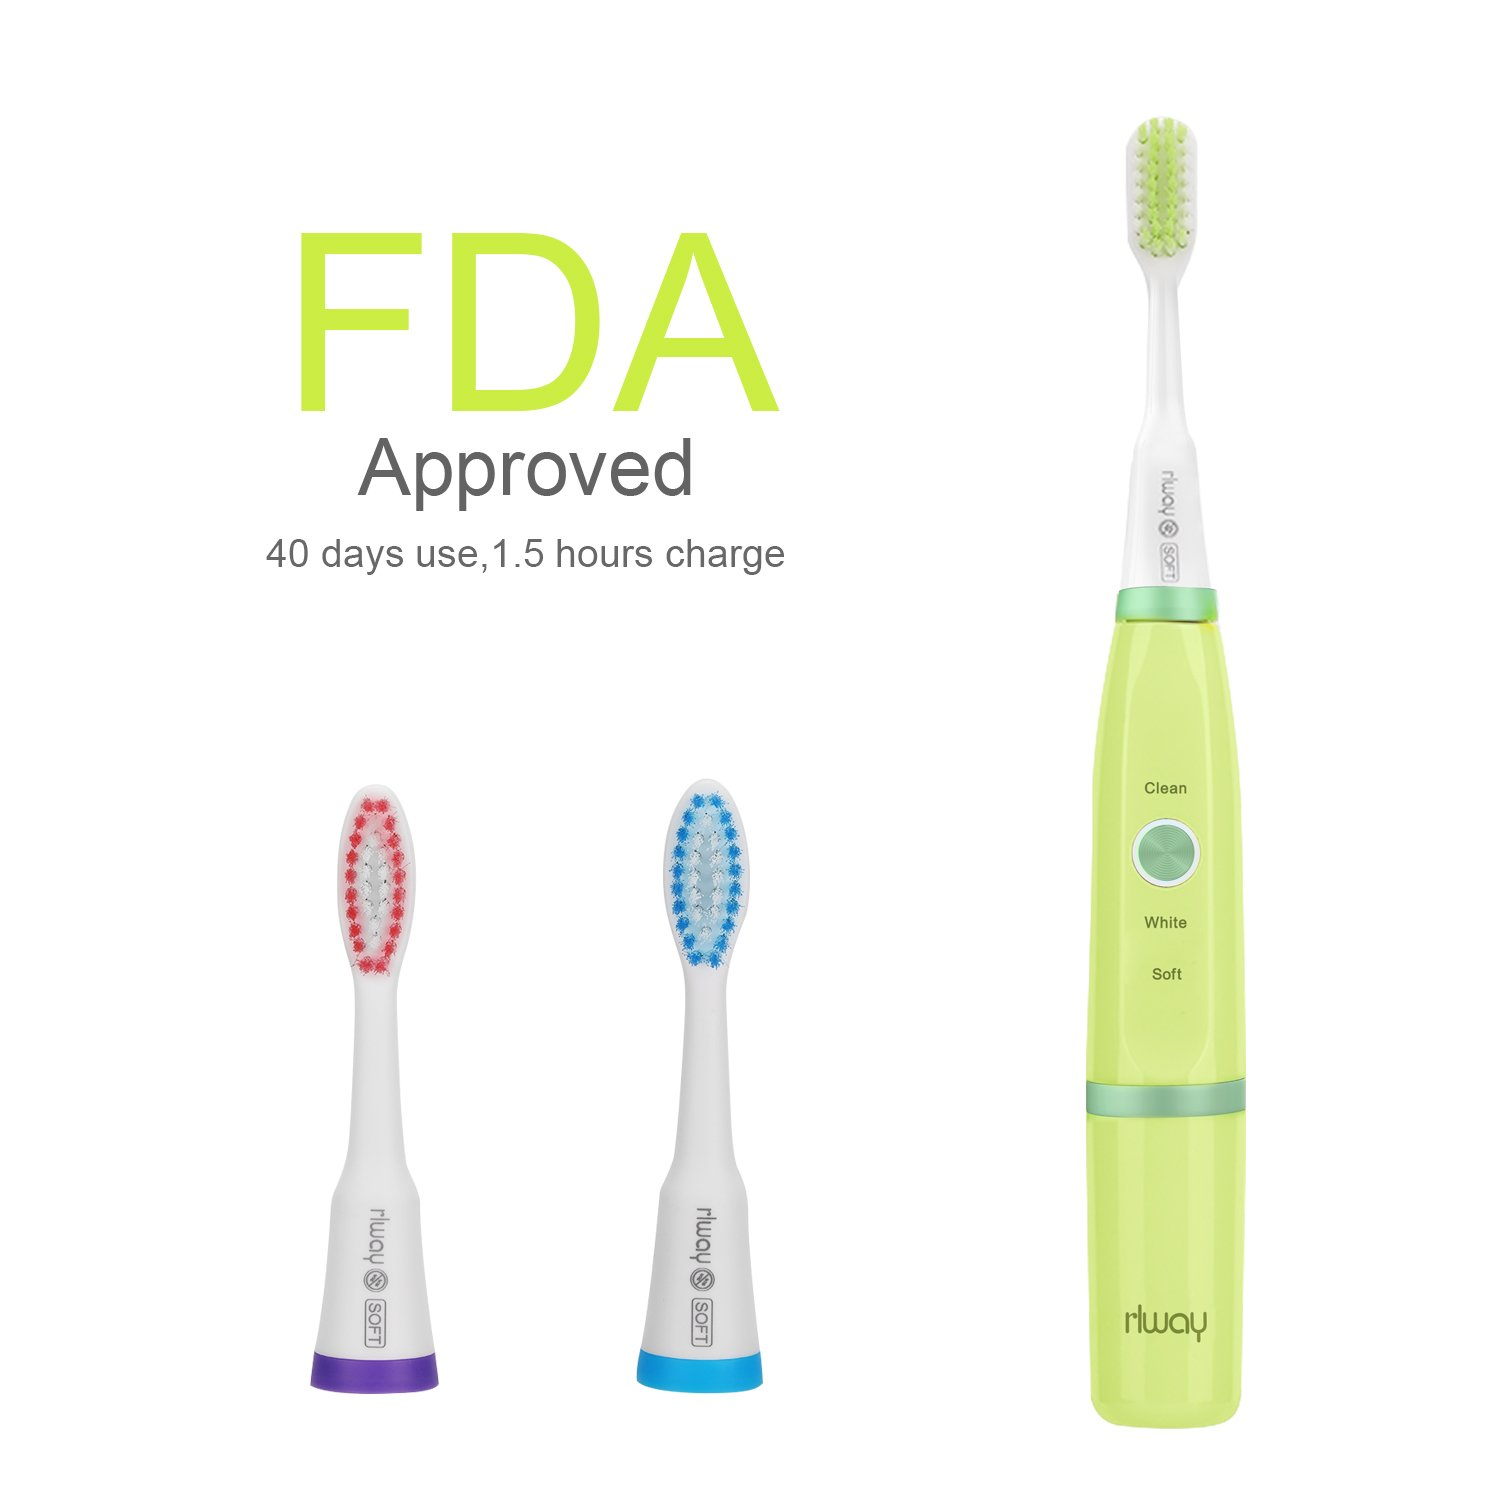 Electric Toothbrush for Kids or Adults,Deep Cleaning as Dentist USB Rechargeable in 1.5 Hours Last 40 Days with 3 Replacement Heads and Super Waterproof Function by Rlway